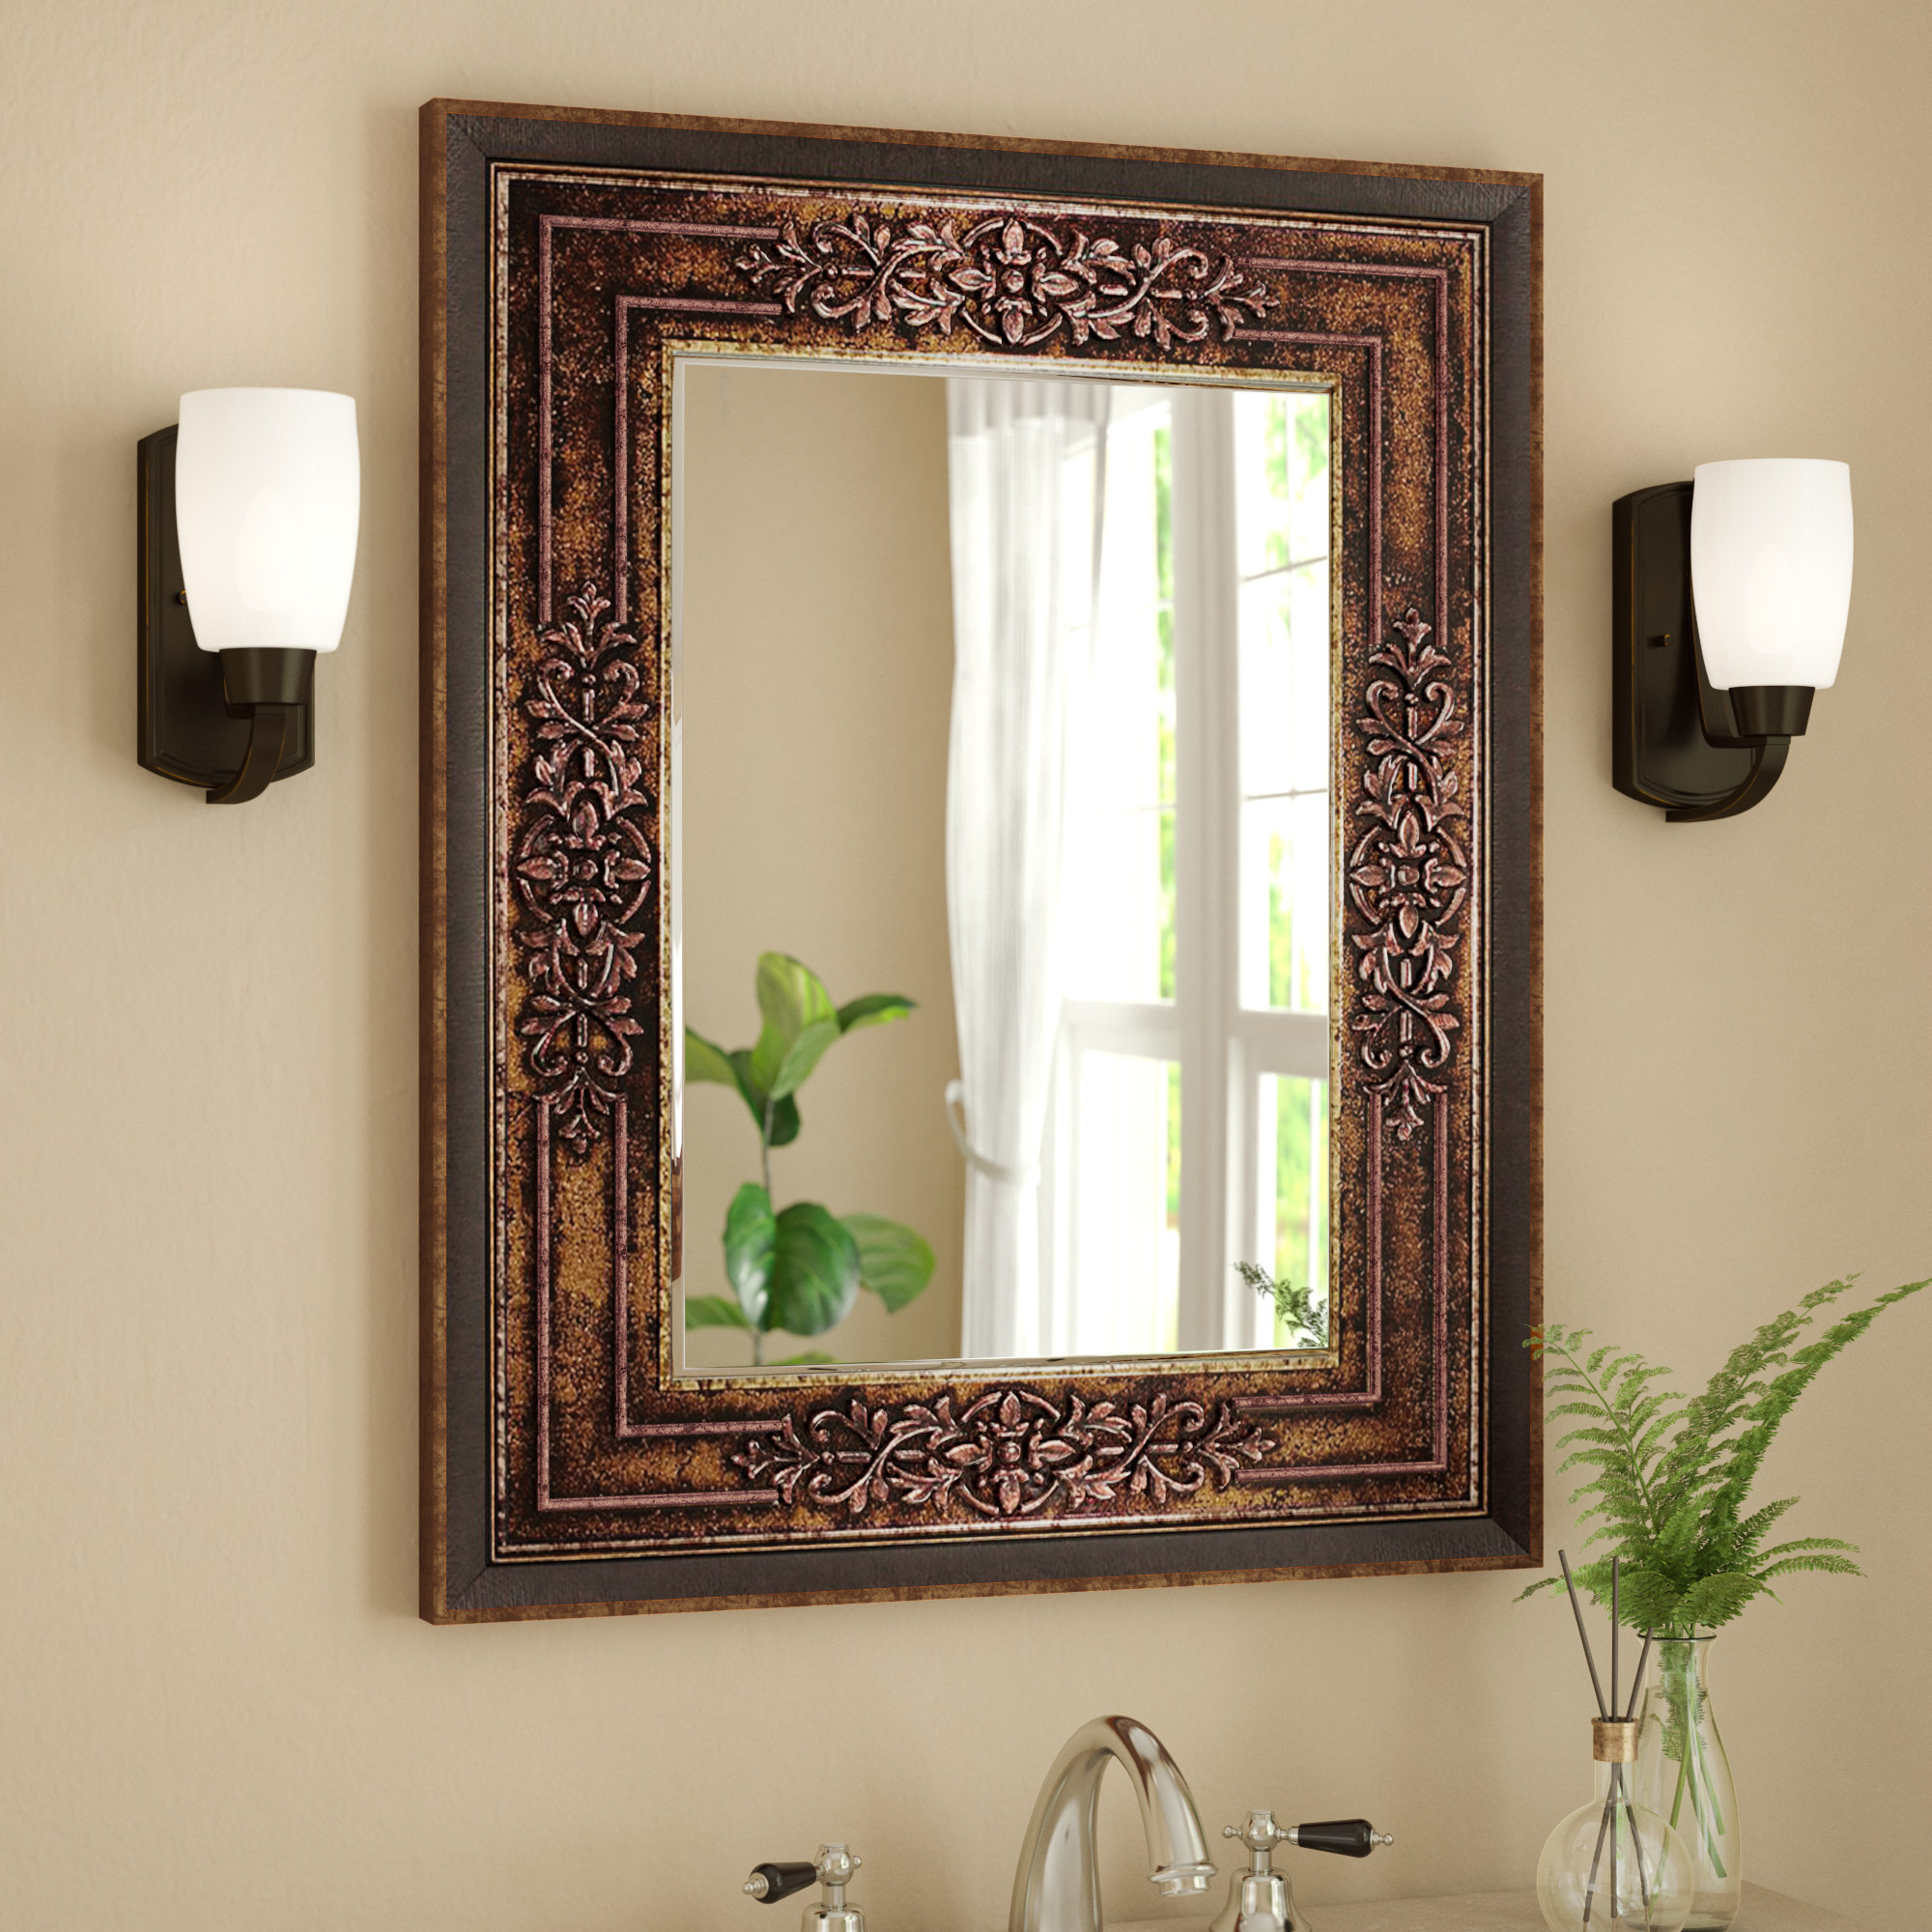 Astoria Grand Bathroom/vanity Mirror & Reviews | Wayfair intended for Boyers Wall Mirrors (Image 3 of 30)